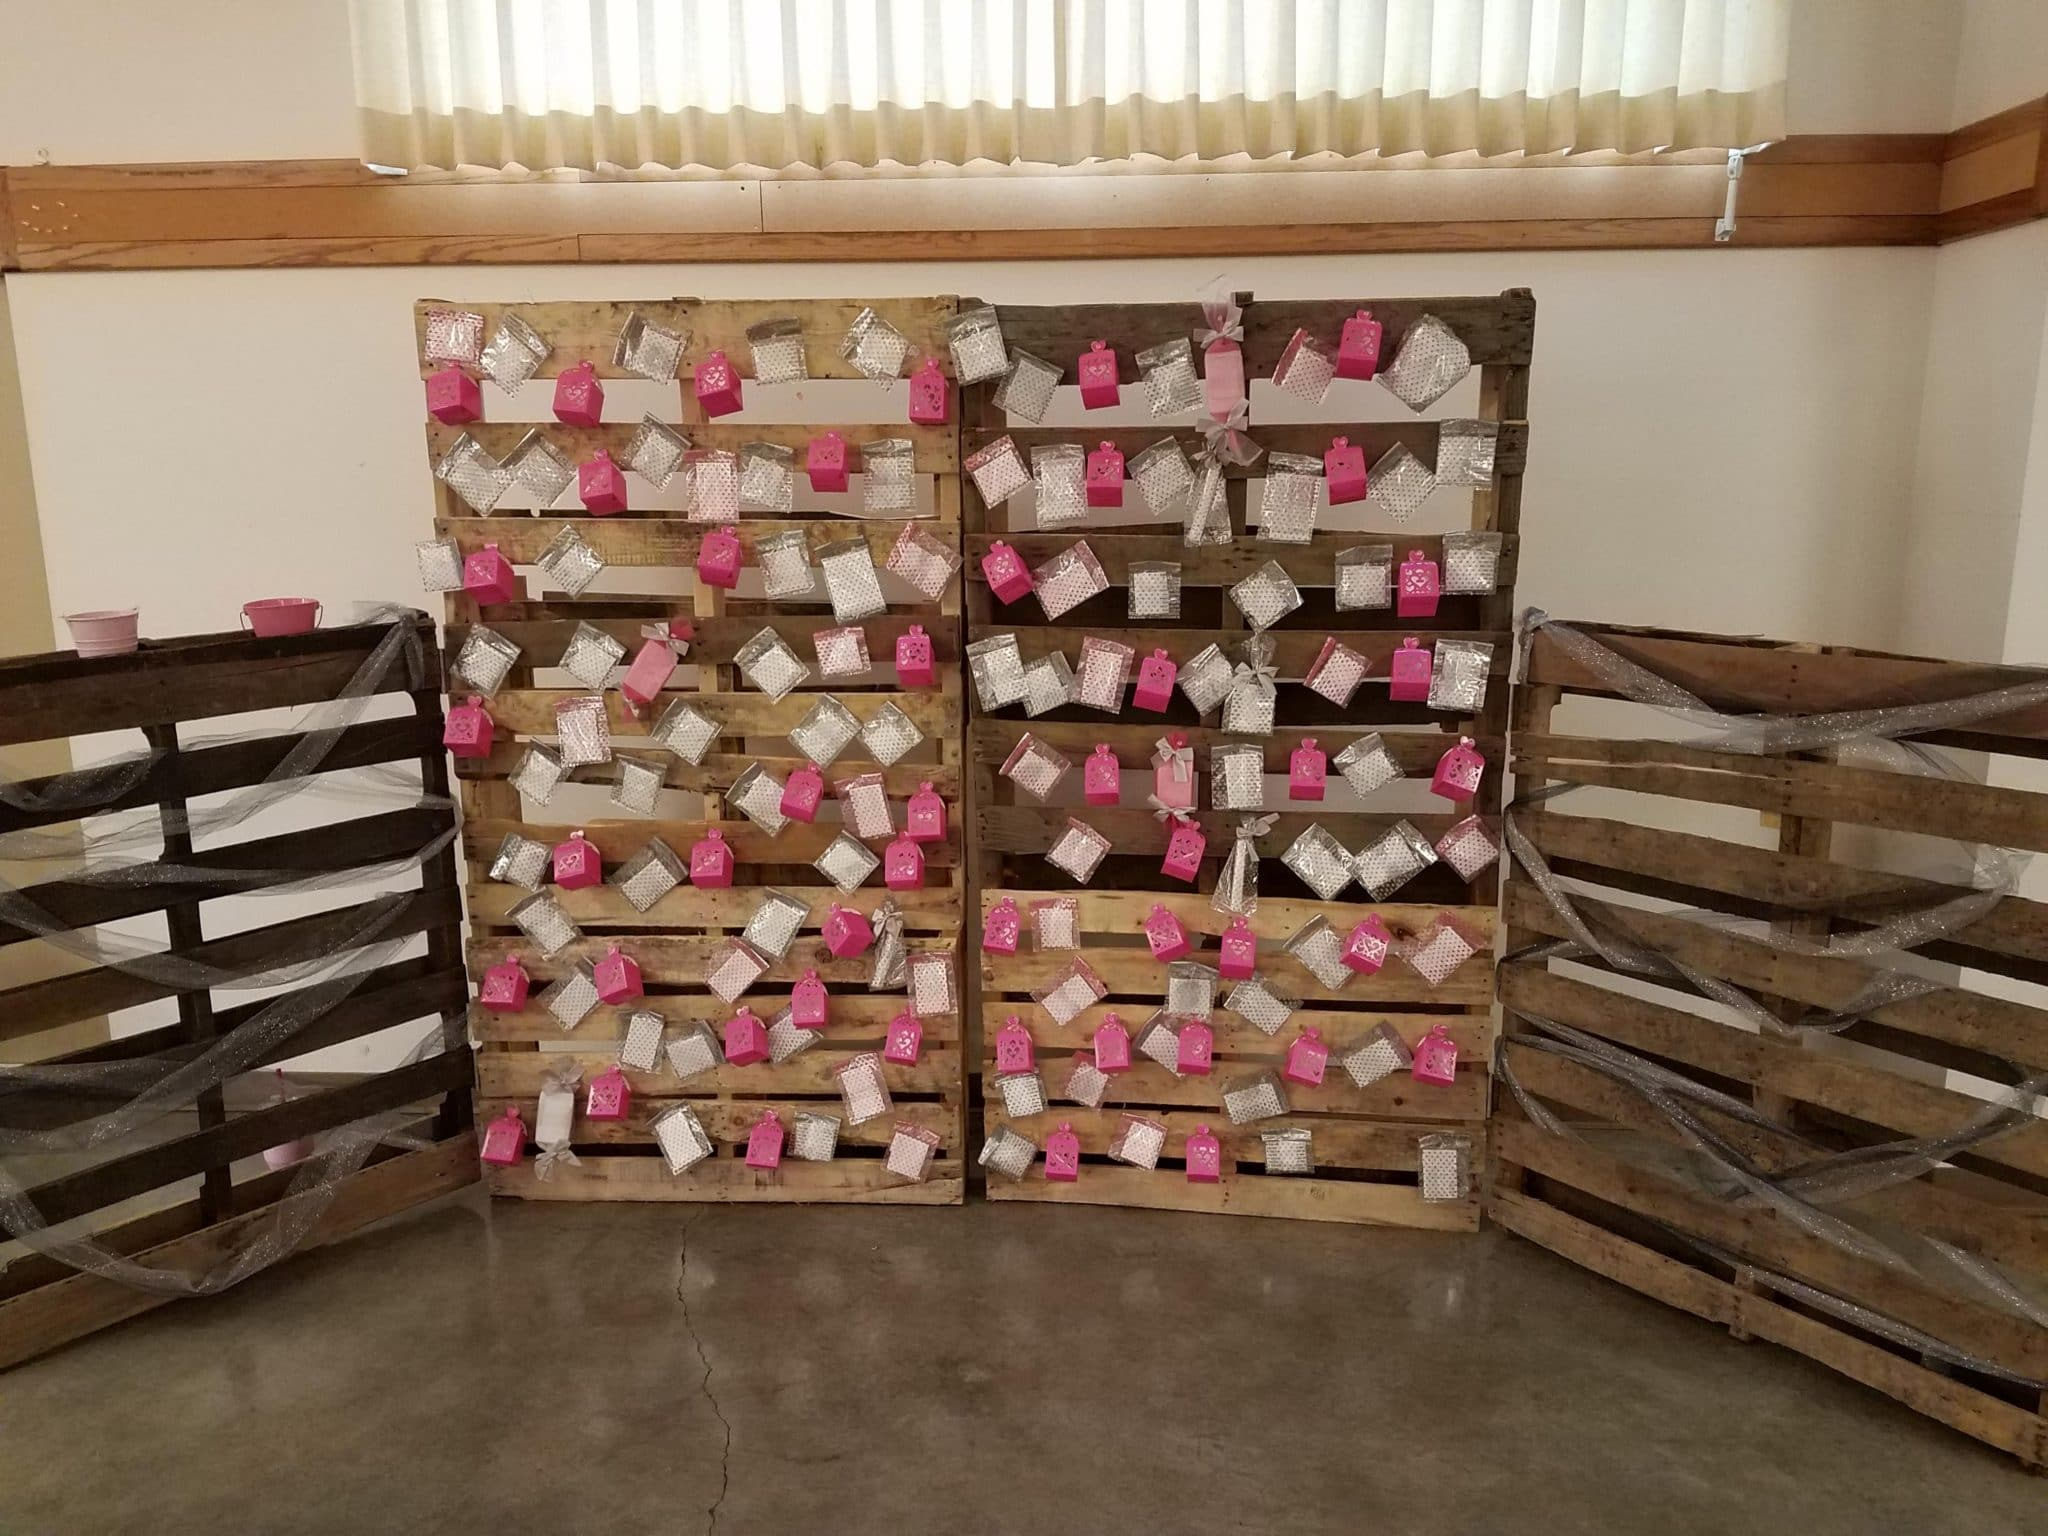 Pink and white envelopes are taped to a couple of pallets